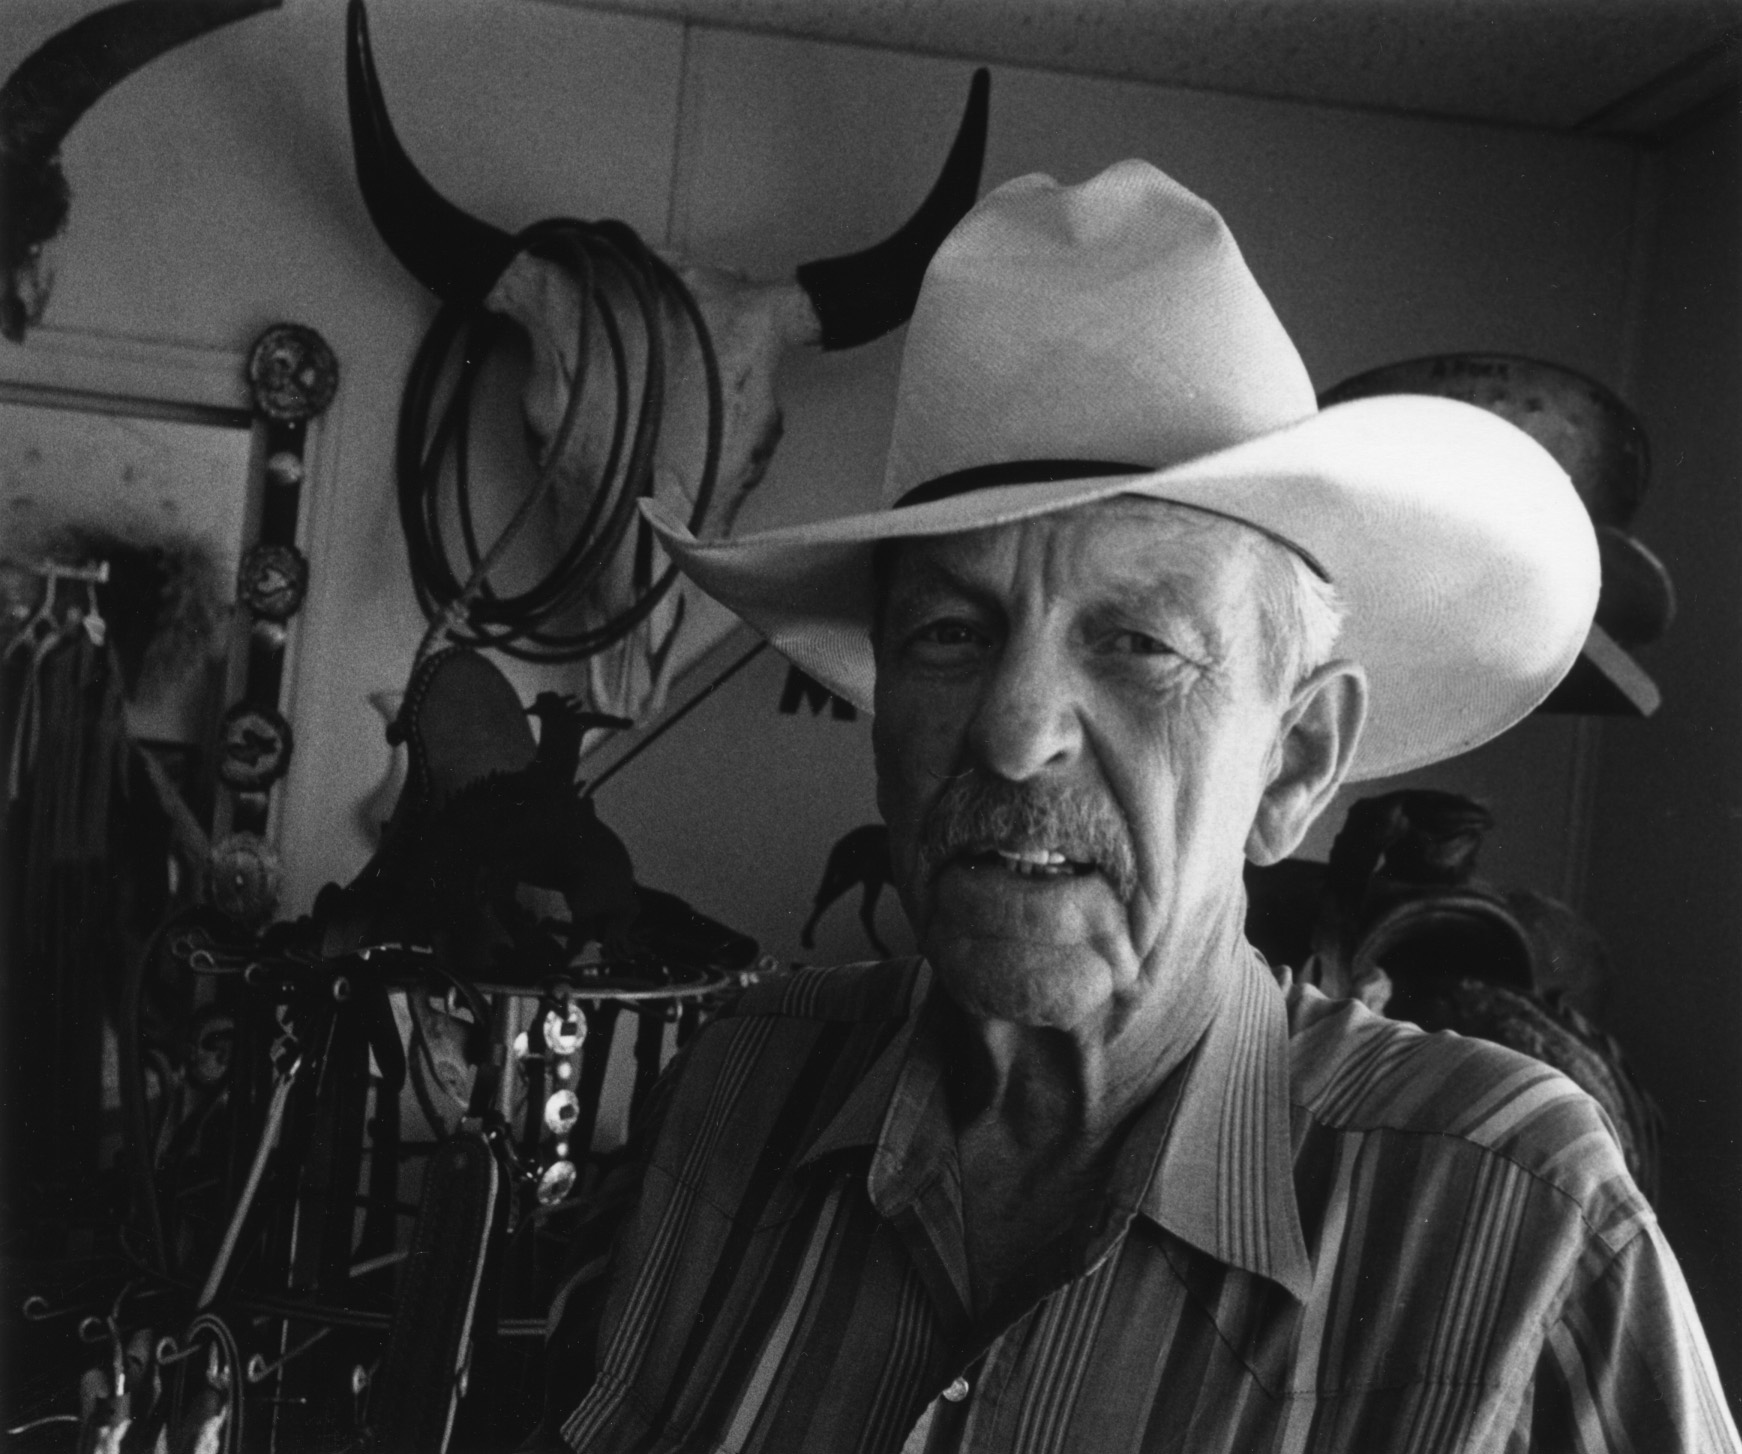 Man with a cowboy hat in a room with cowboy paraphernalia